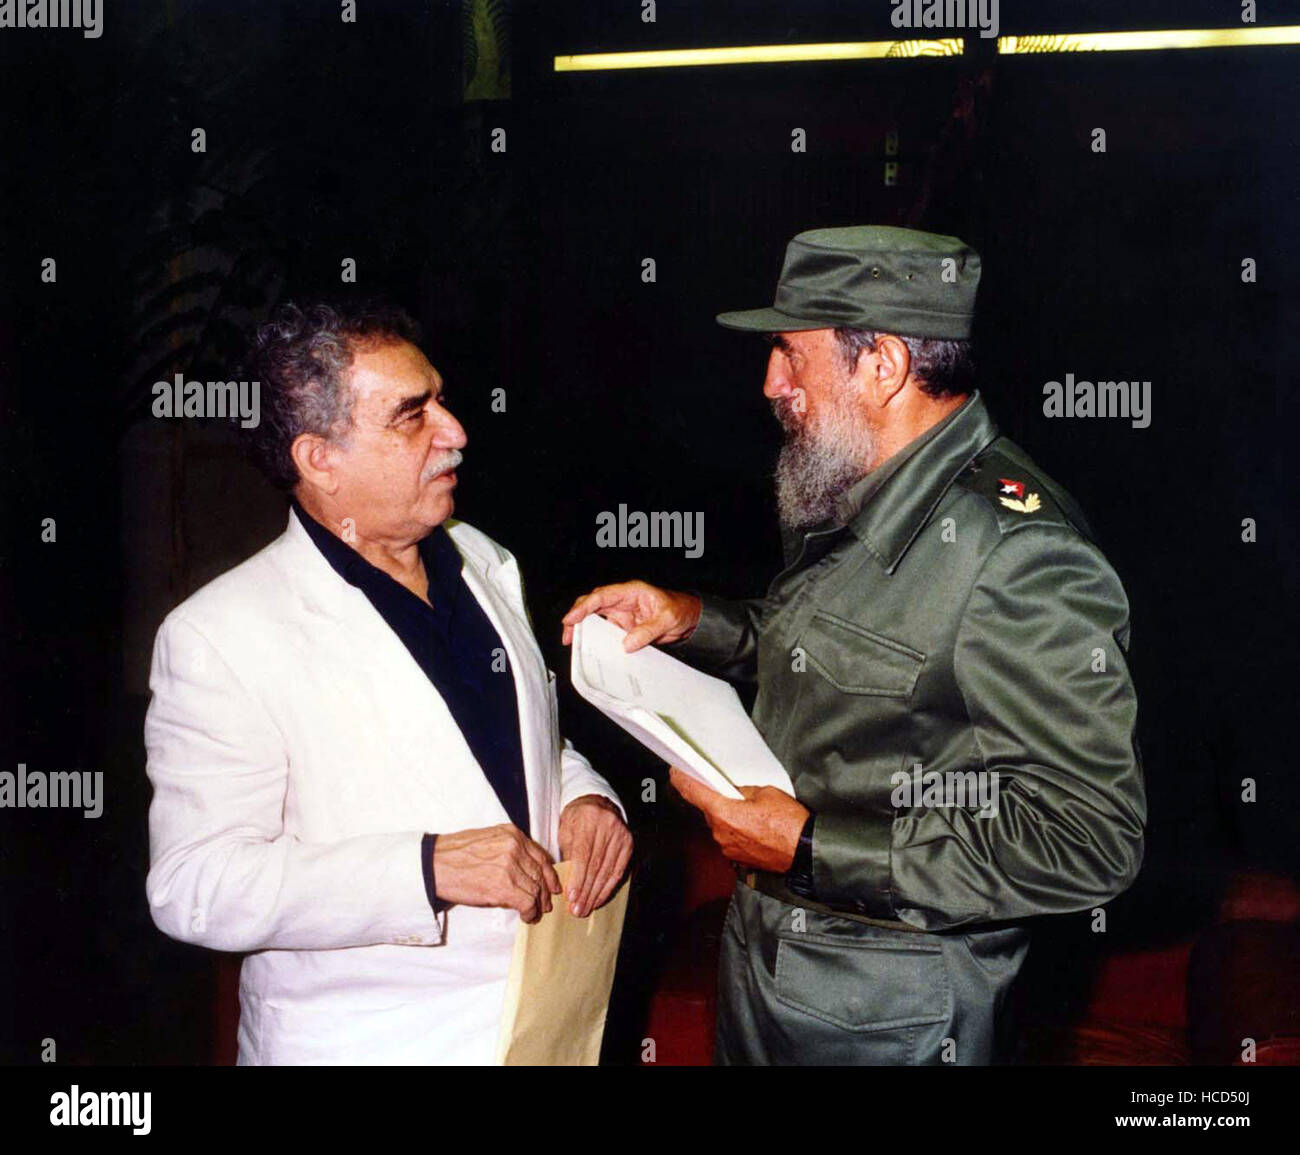 FIDEL, Gabriel Garcia Marquez, Fidel Castro, 2001, (c) First Run Features/courtesy Everett Collection Stock Photo